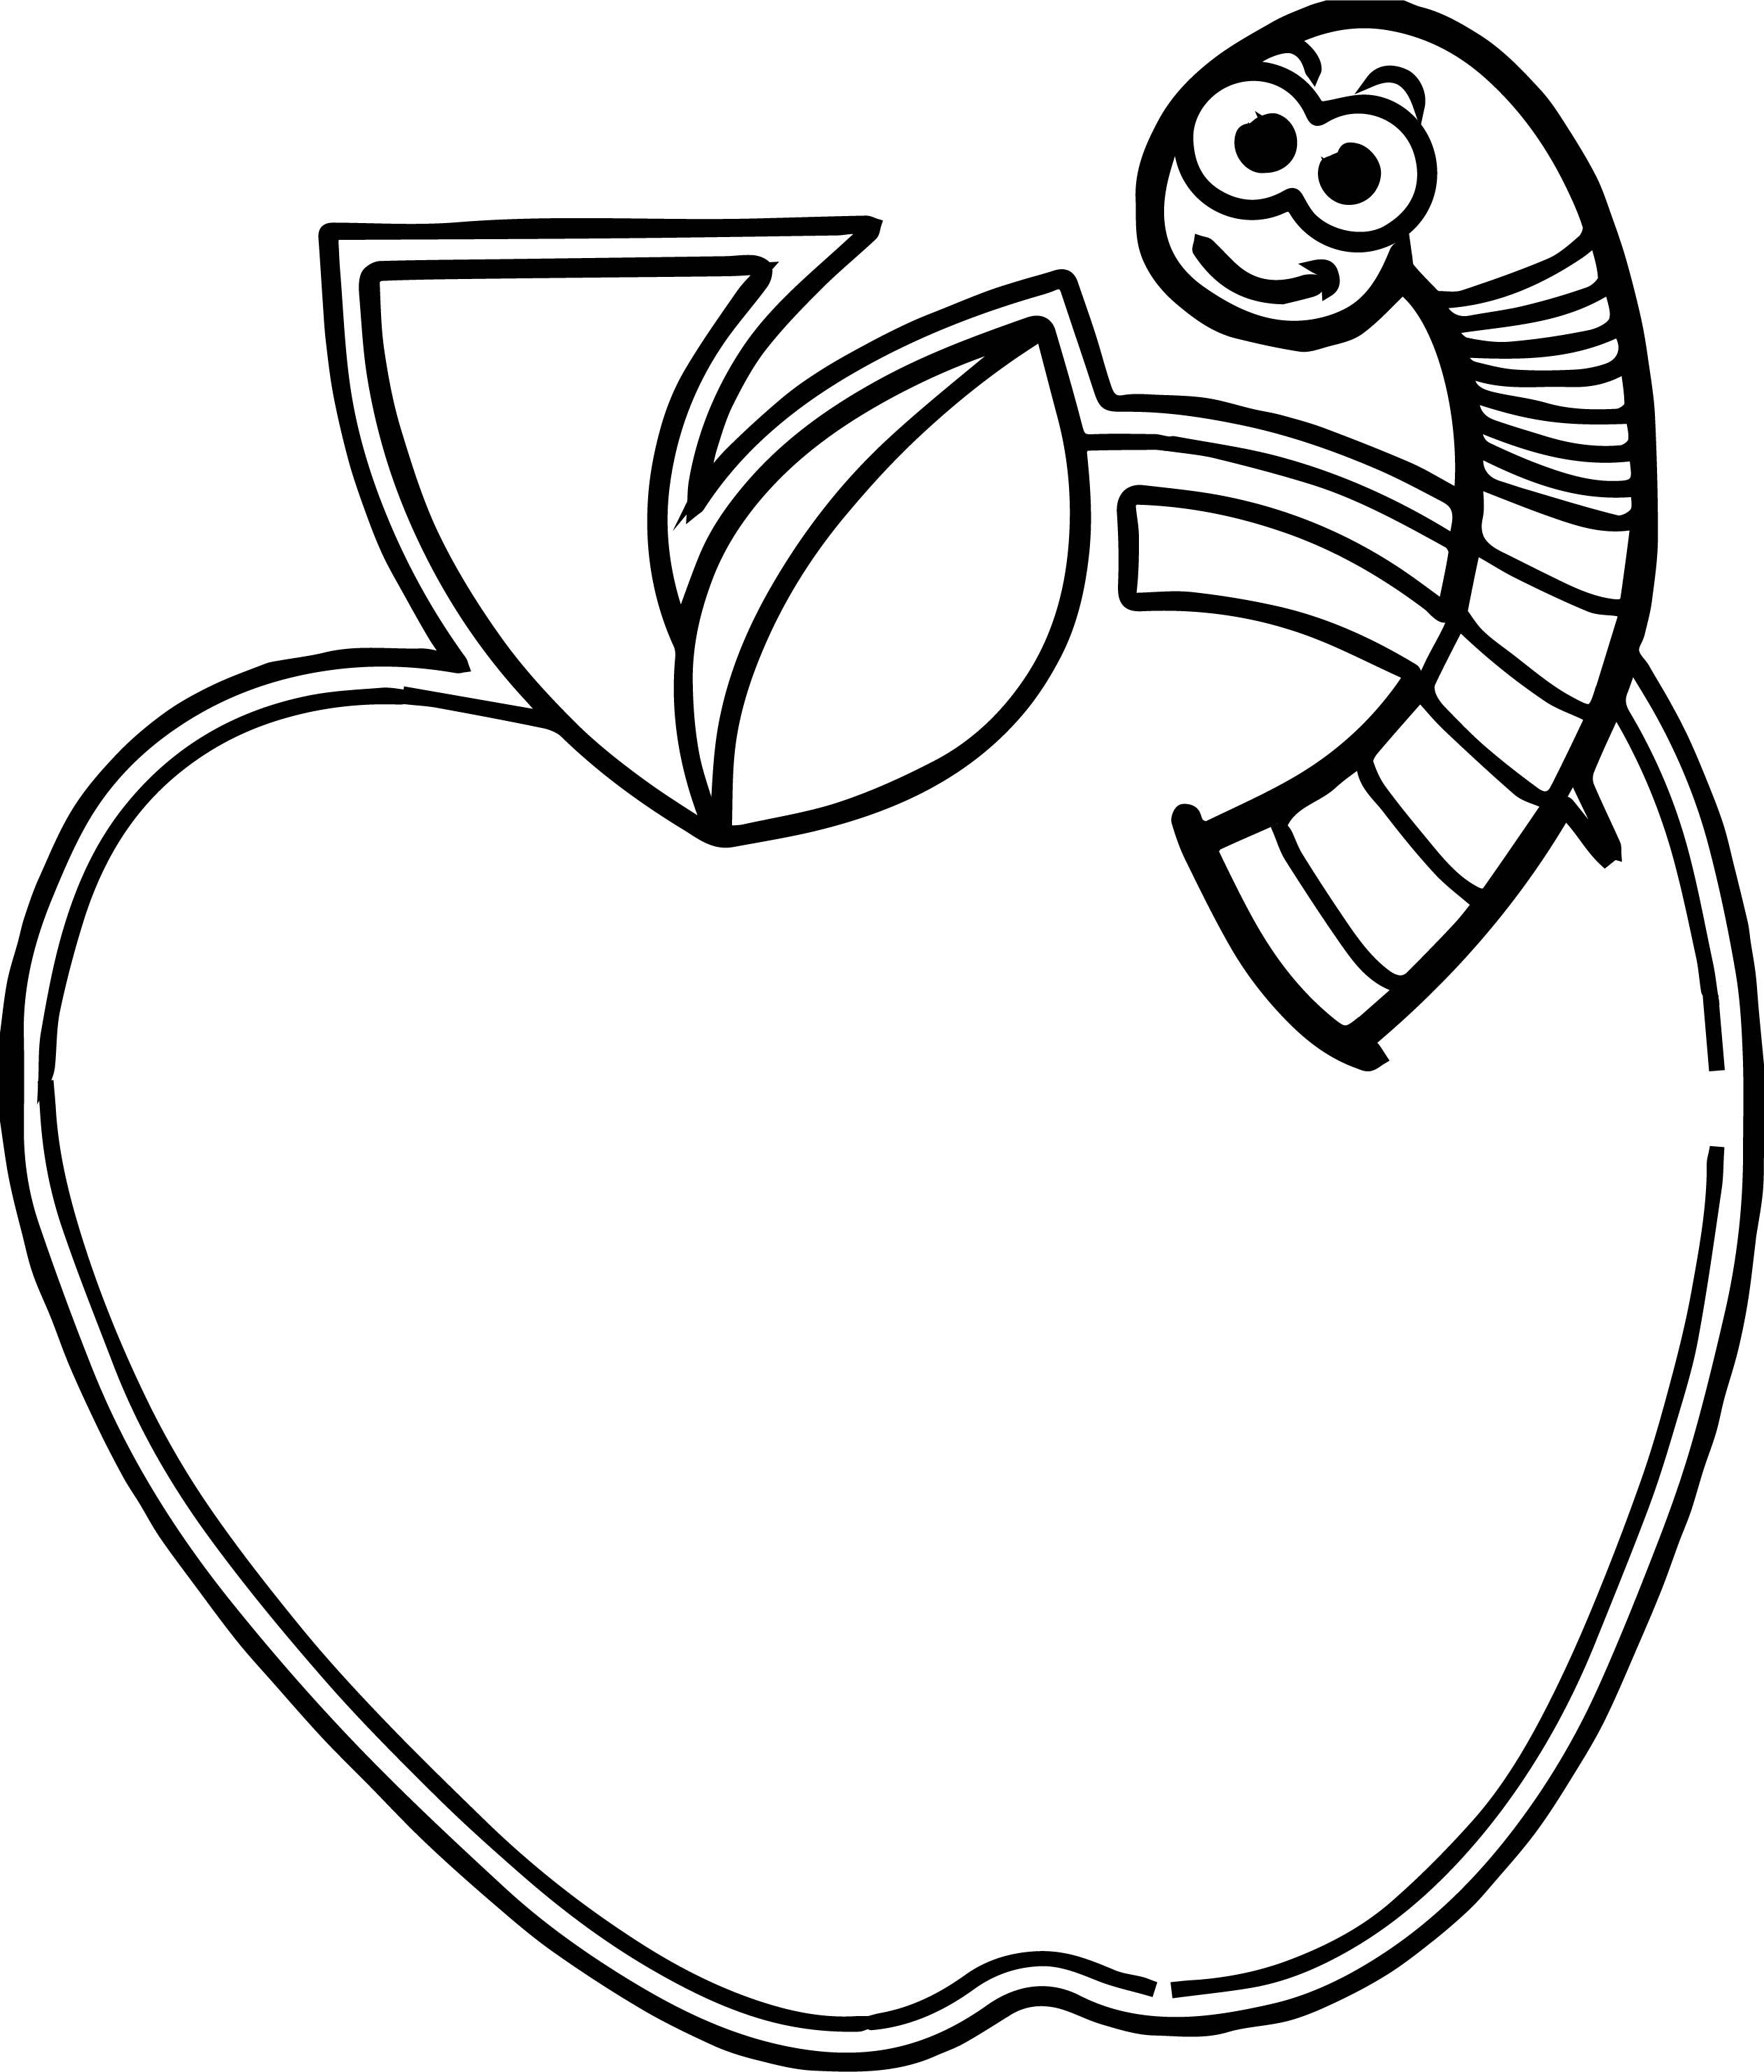 Cool Apple Worm Coloring Pages